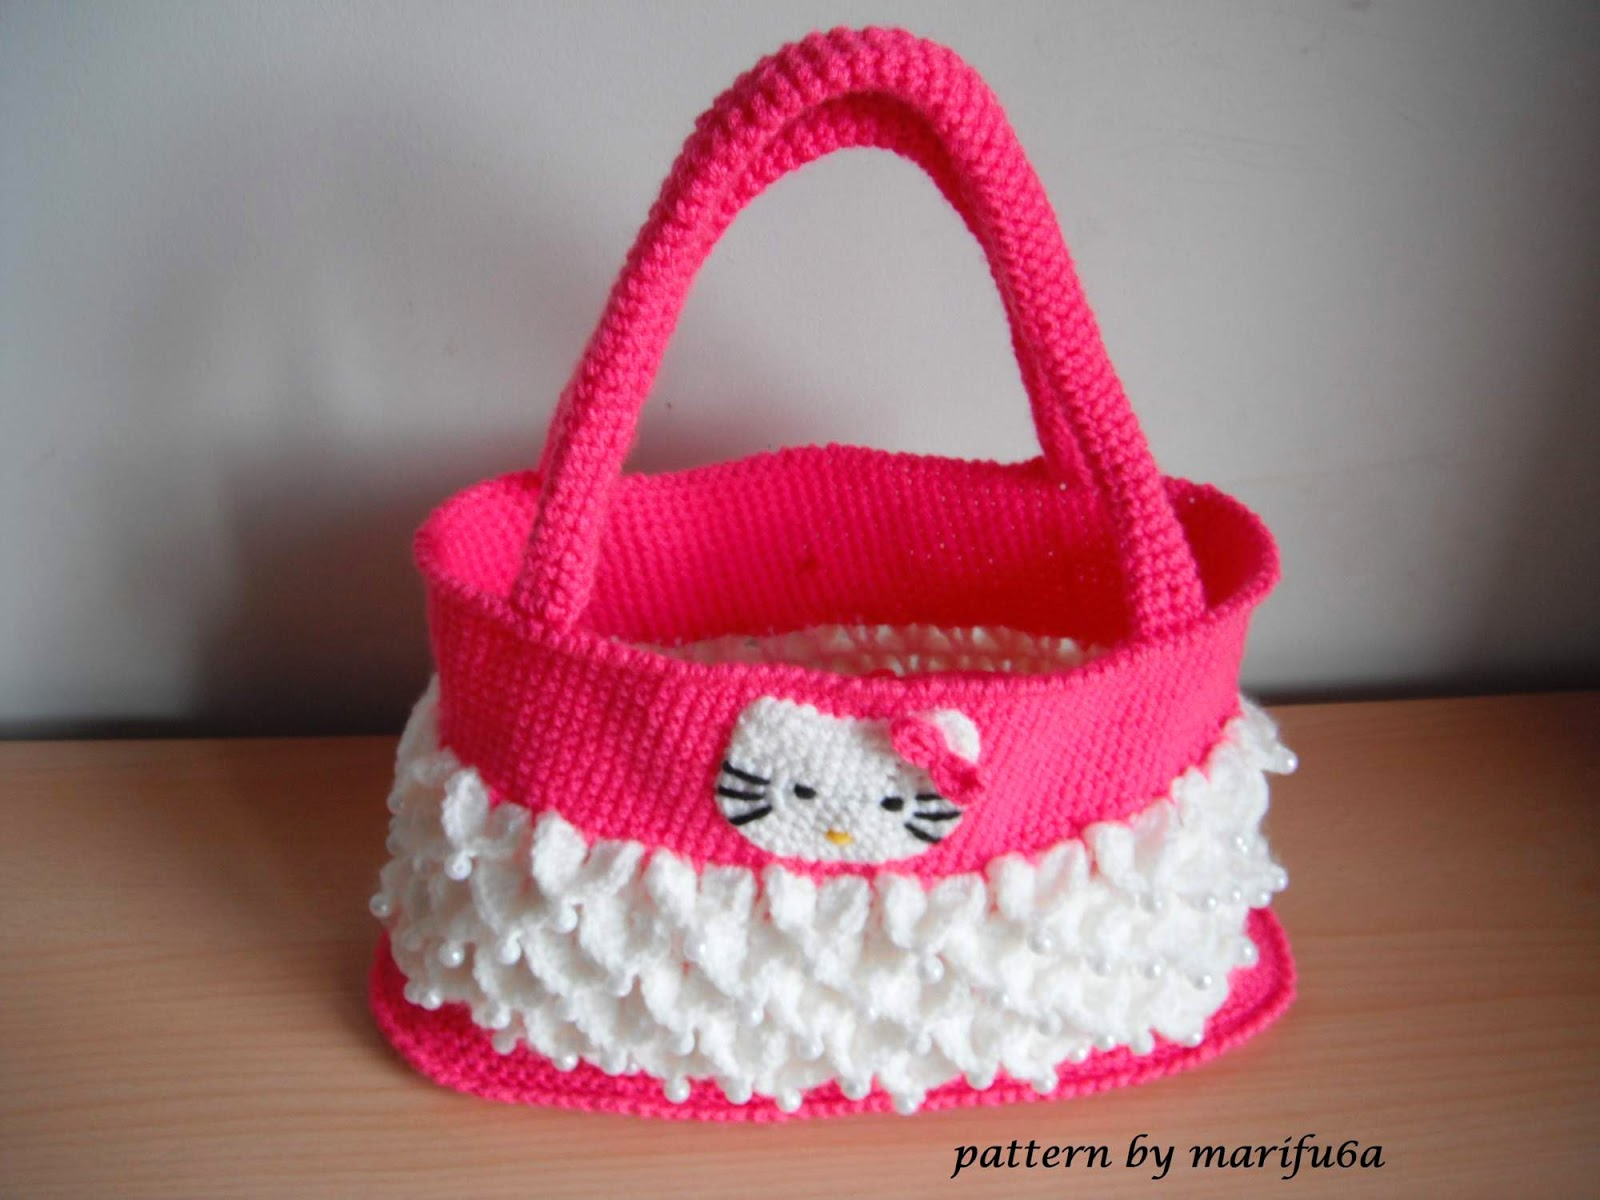 How To Crochet Hello Kitty Bag By Marifu6a Free Pattern Tutorial : Free crochet patterns and video tutorials: how to crochet ...